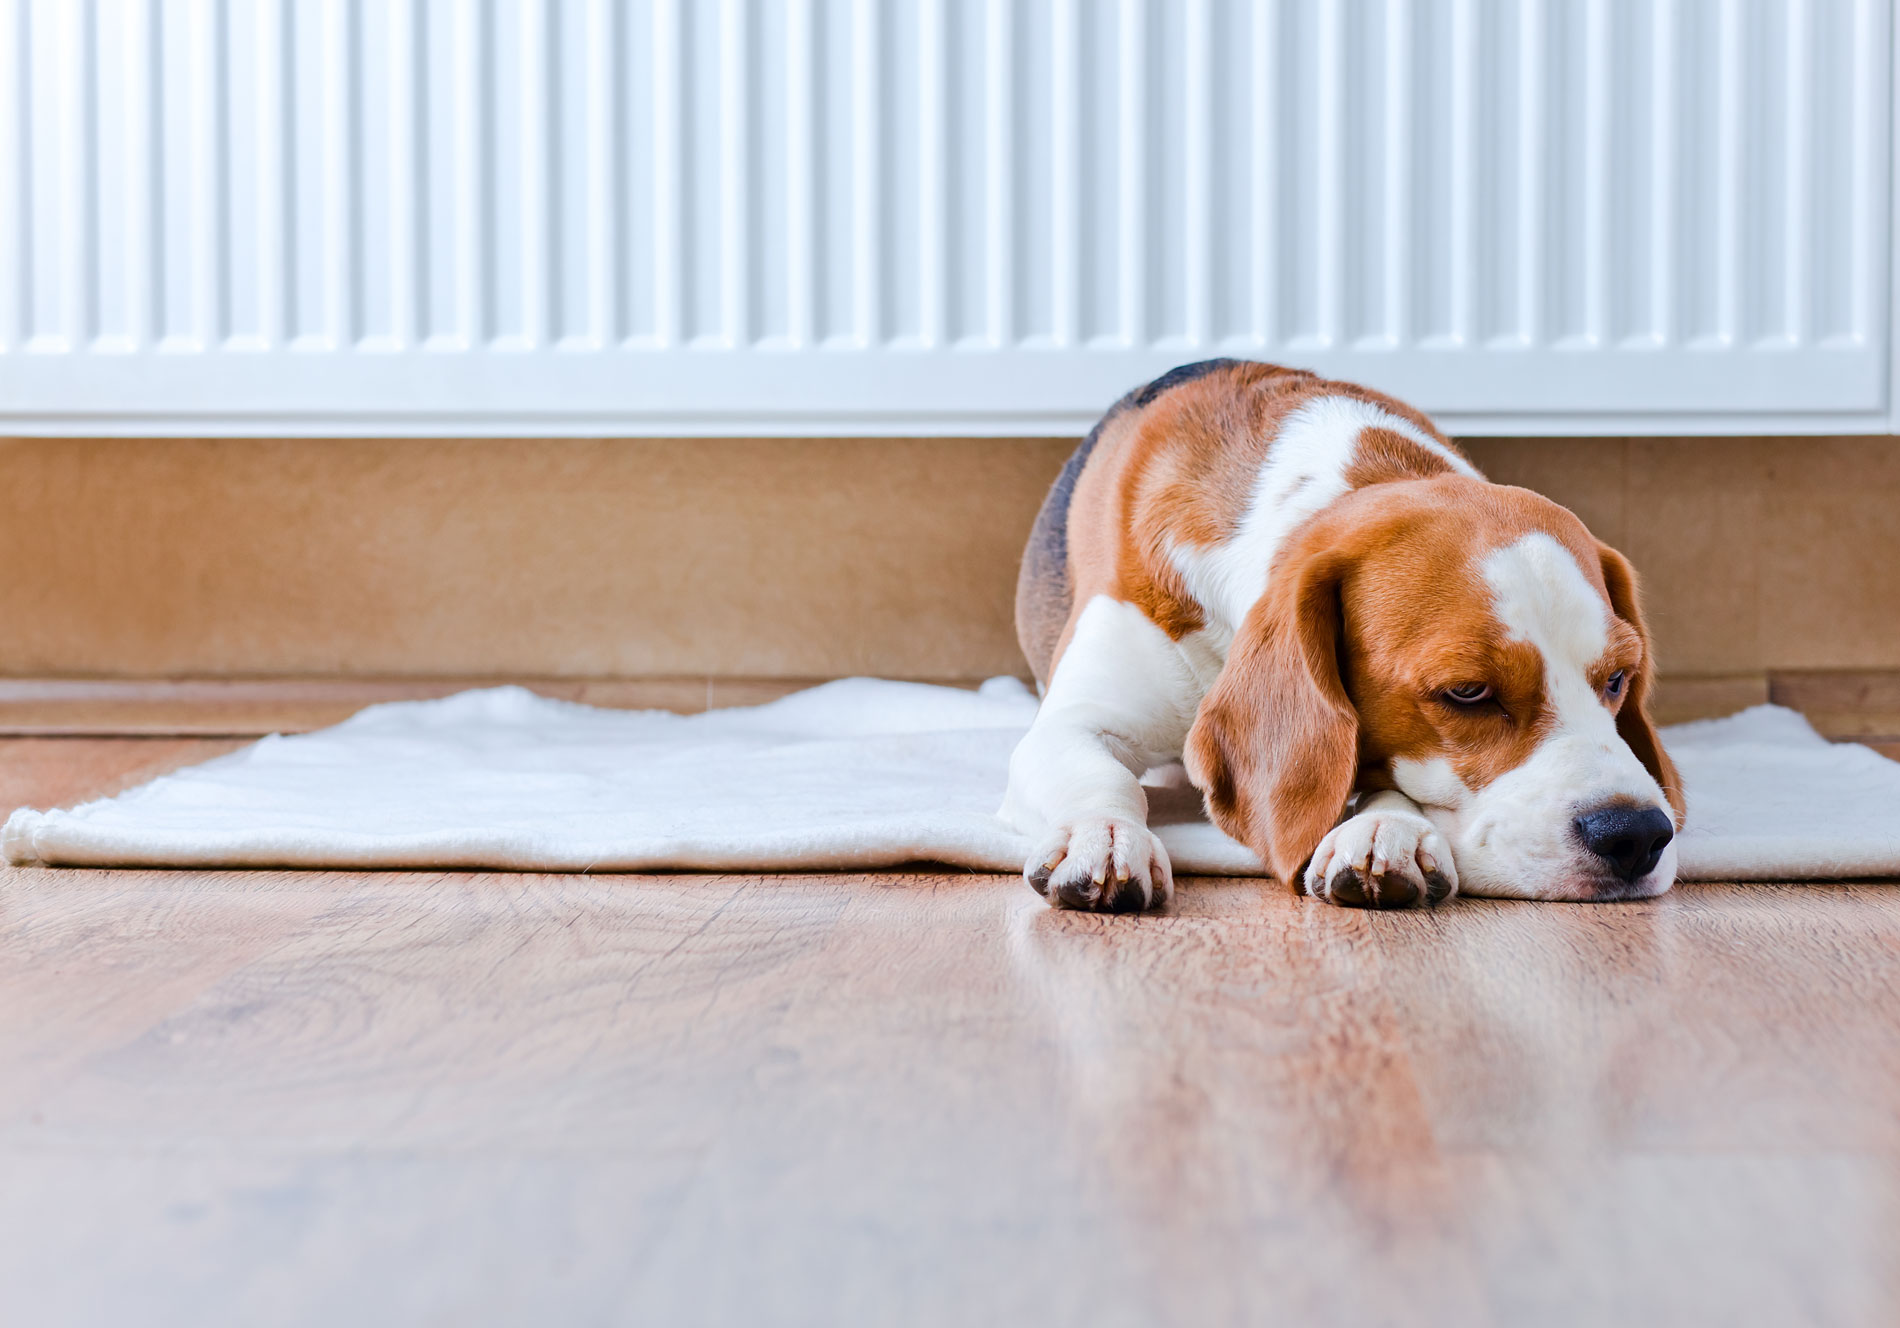 Buying a new heater? Here's our Winter Heating Guide: Electric heating